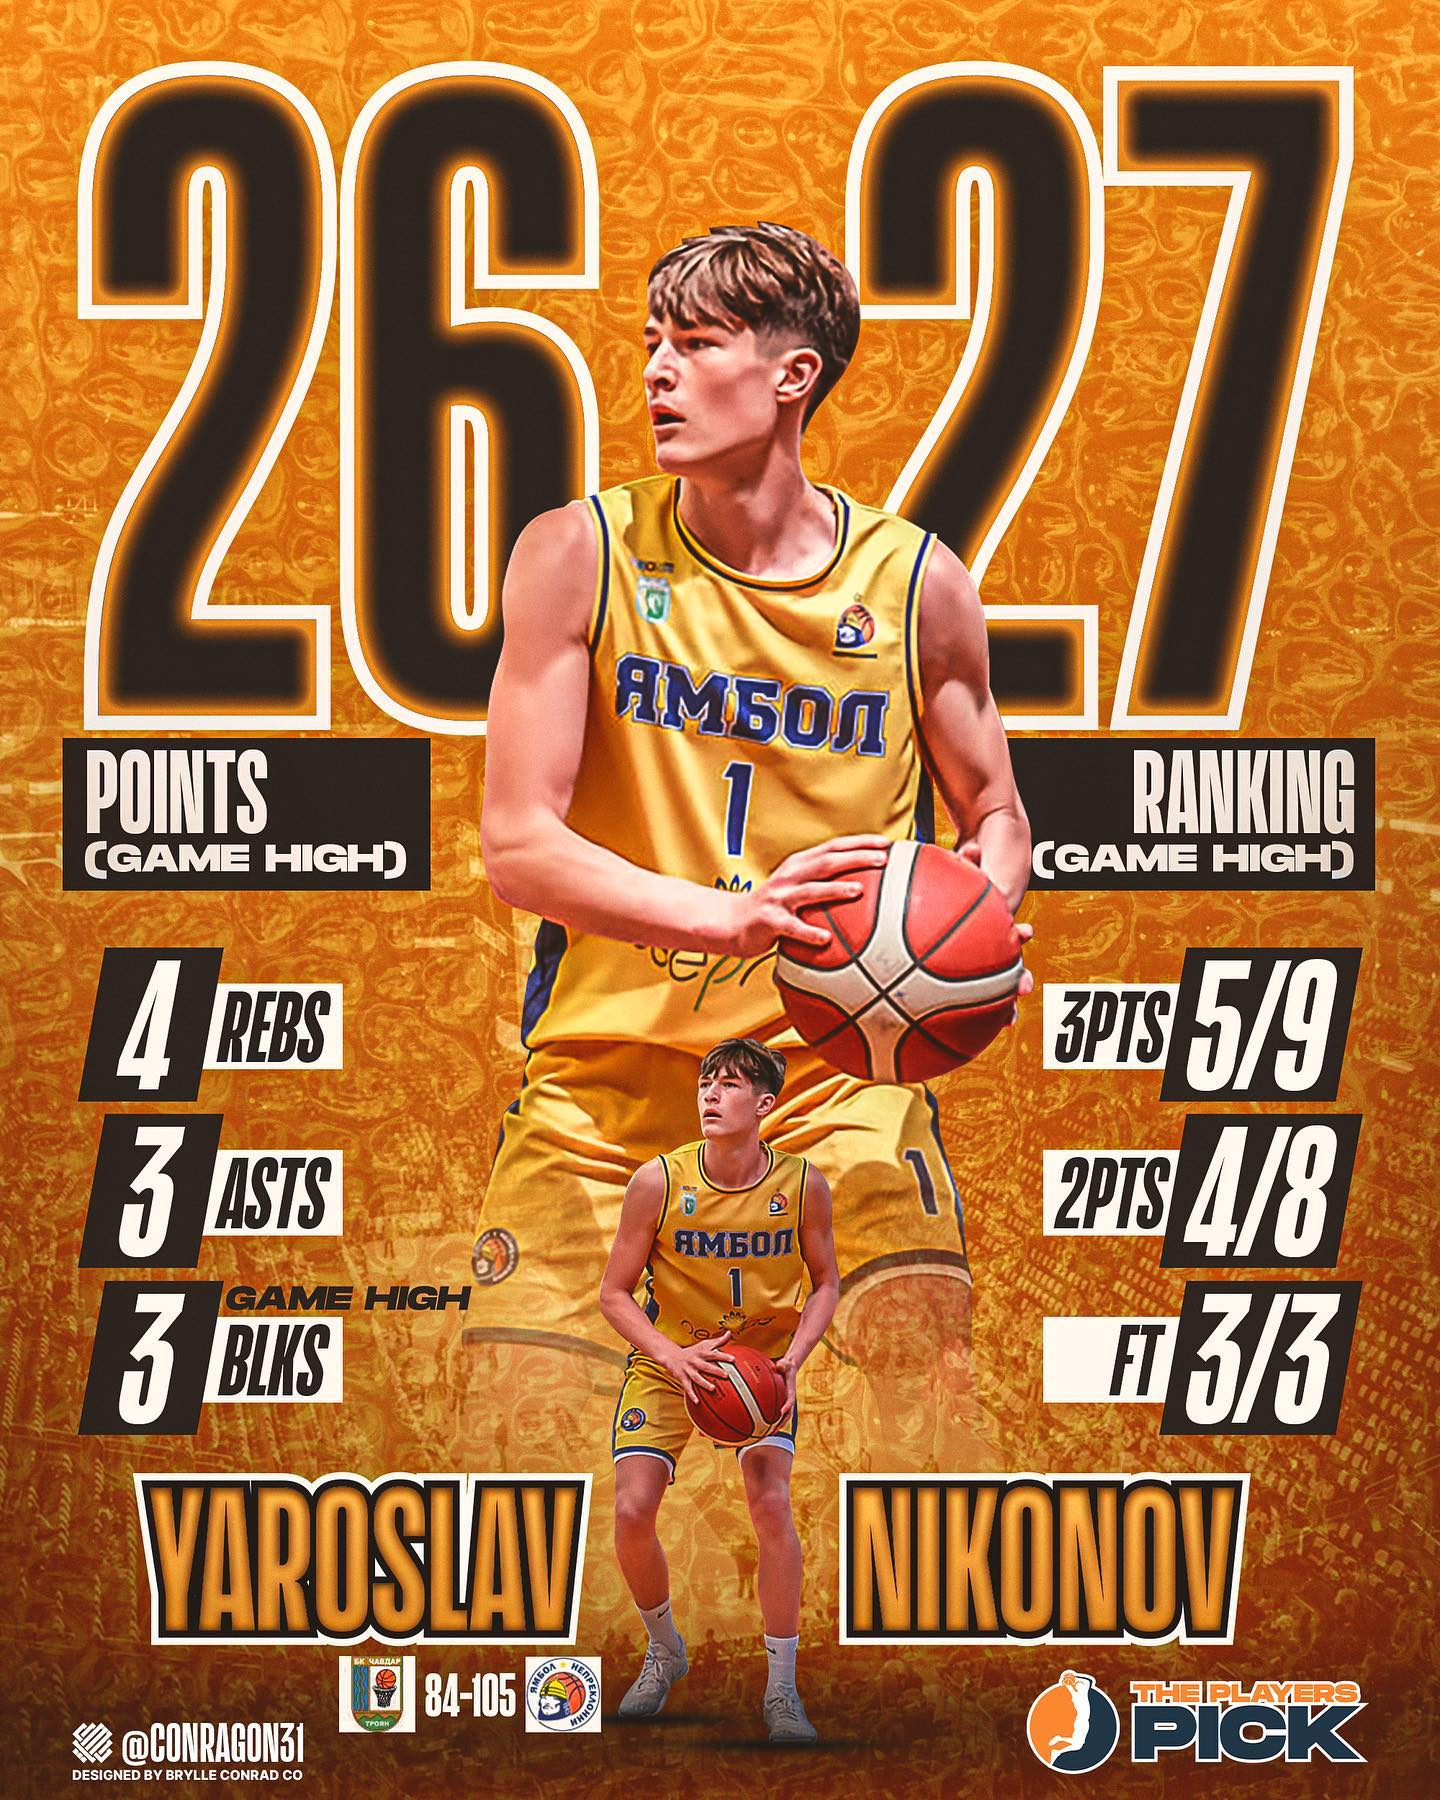 Wonderkid Yaroslav Nikonov keeps shining with 26 points vs Troyan!